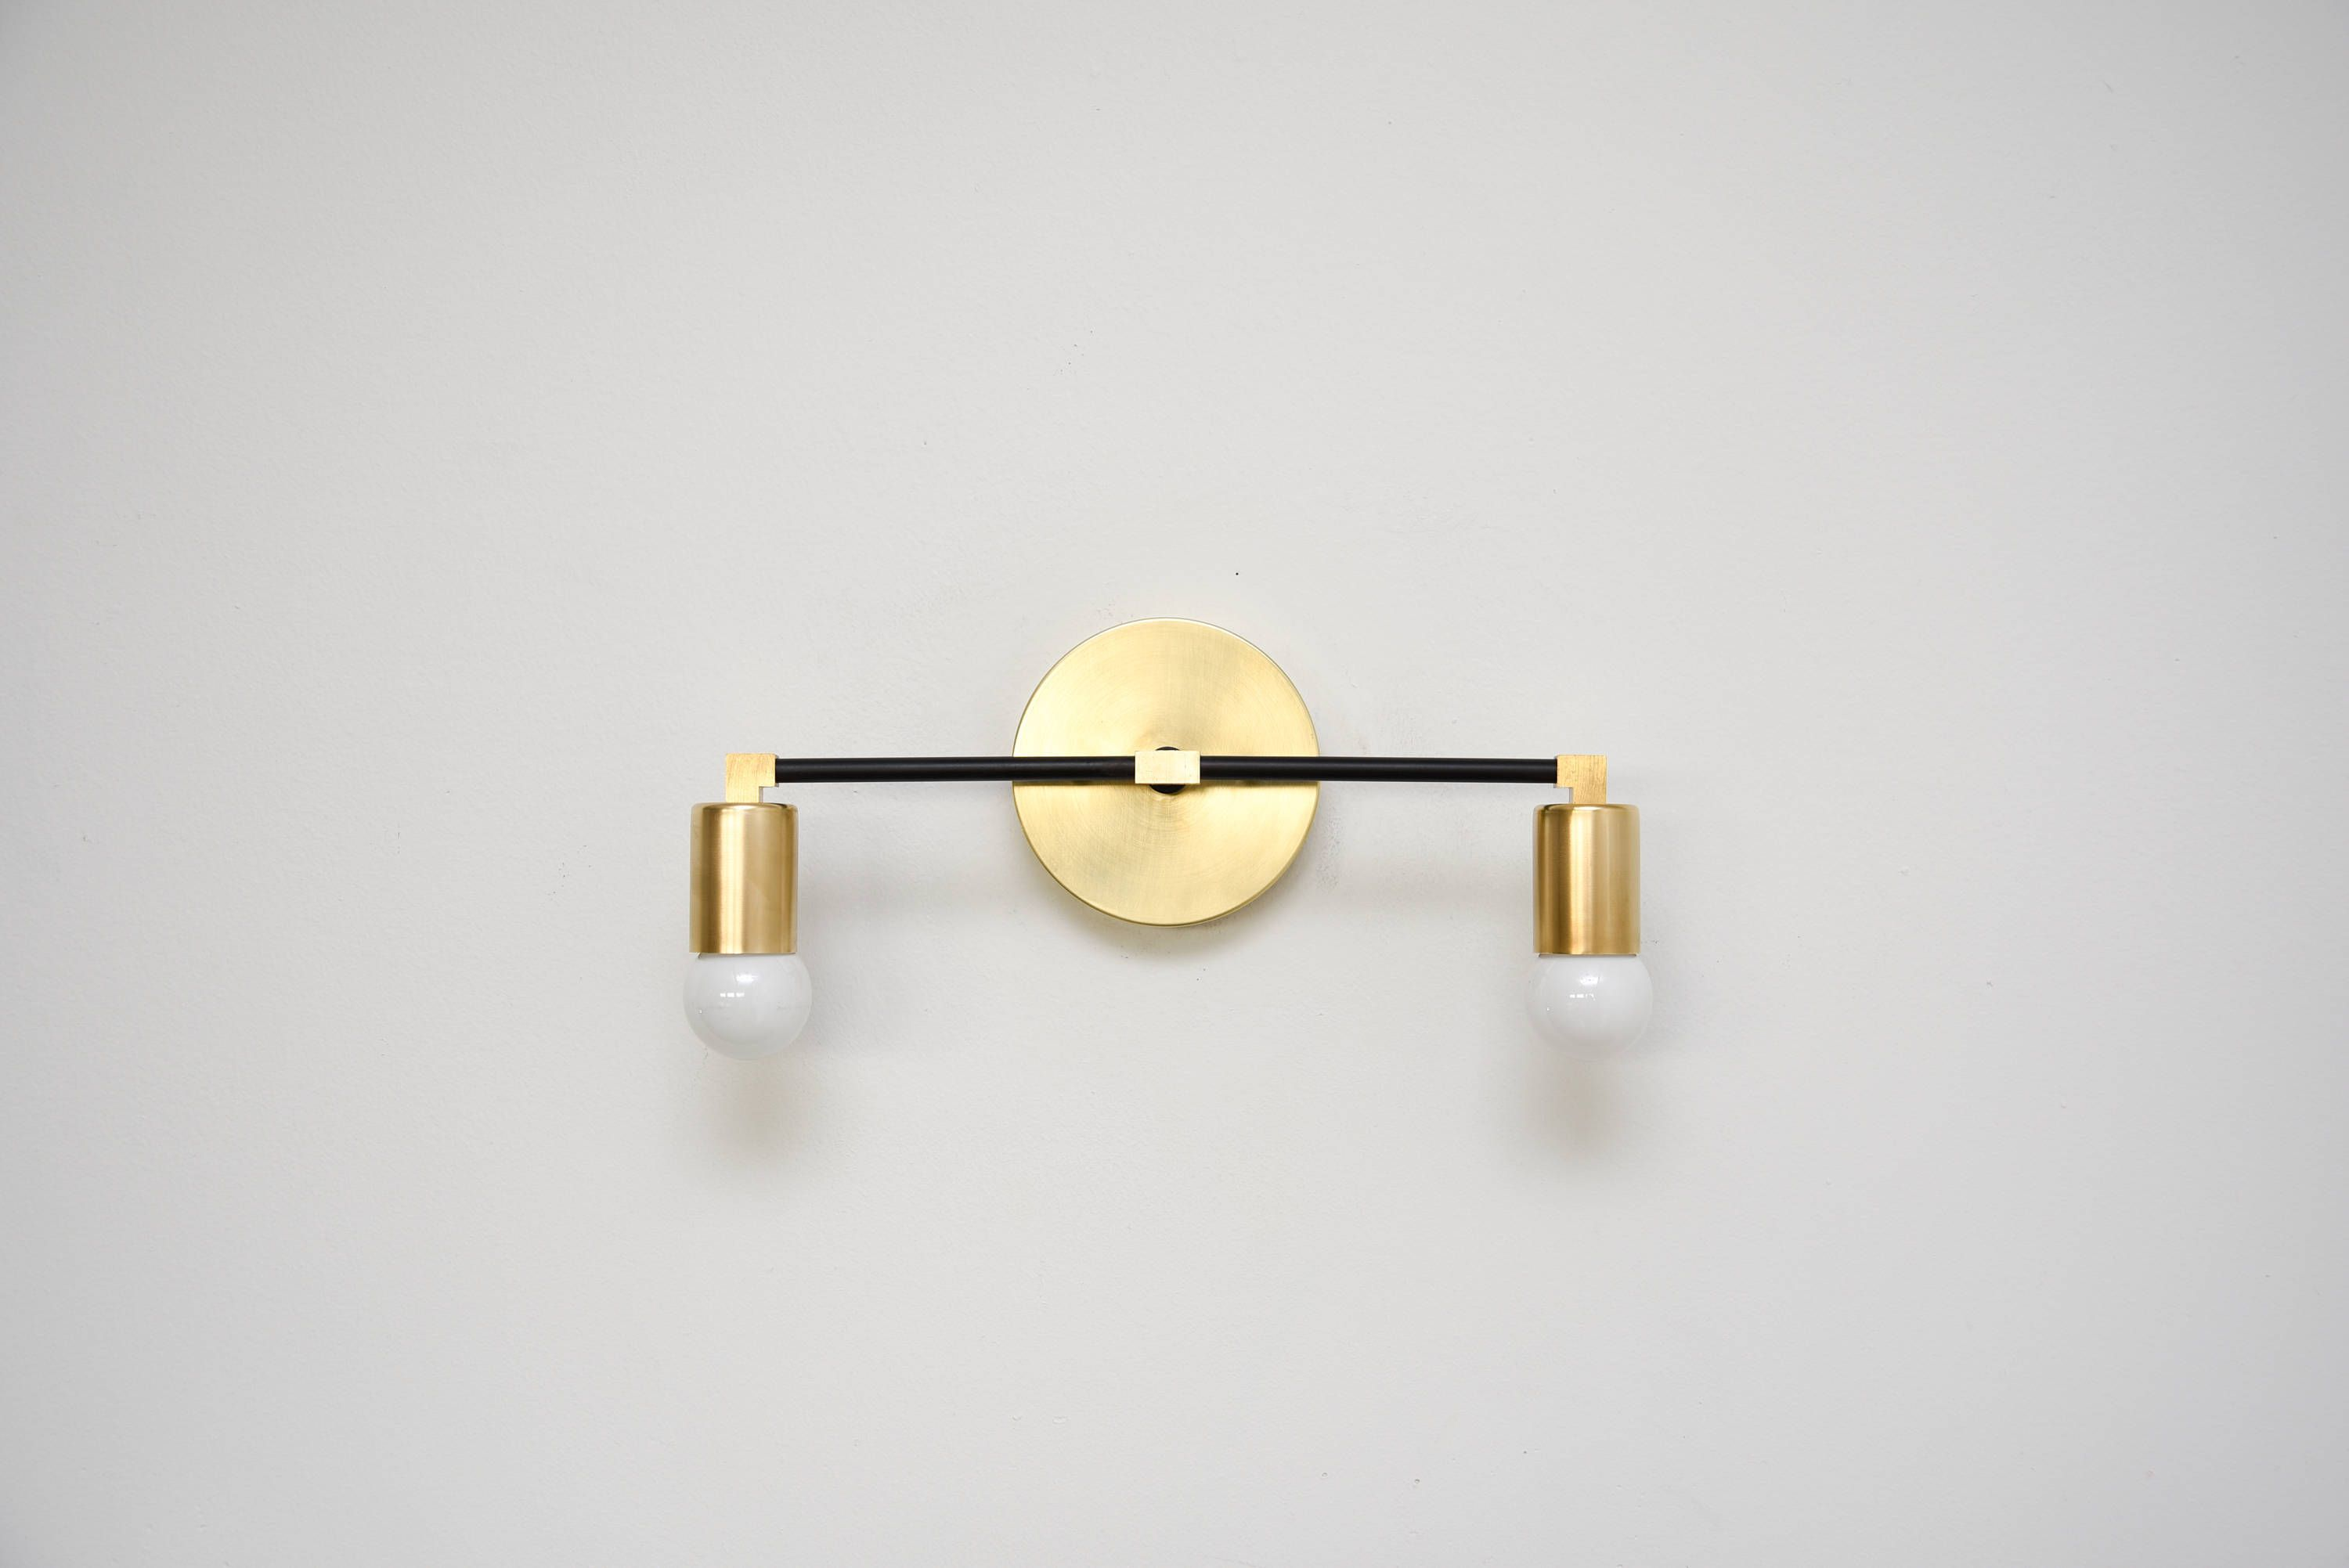 Stunning 2 bulb wall sconce available in brass black and brass mix